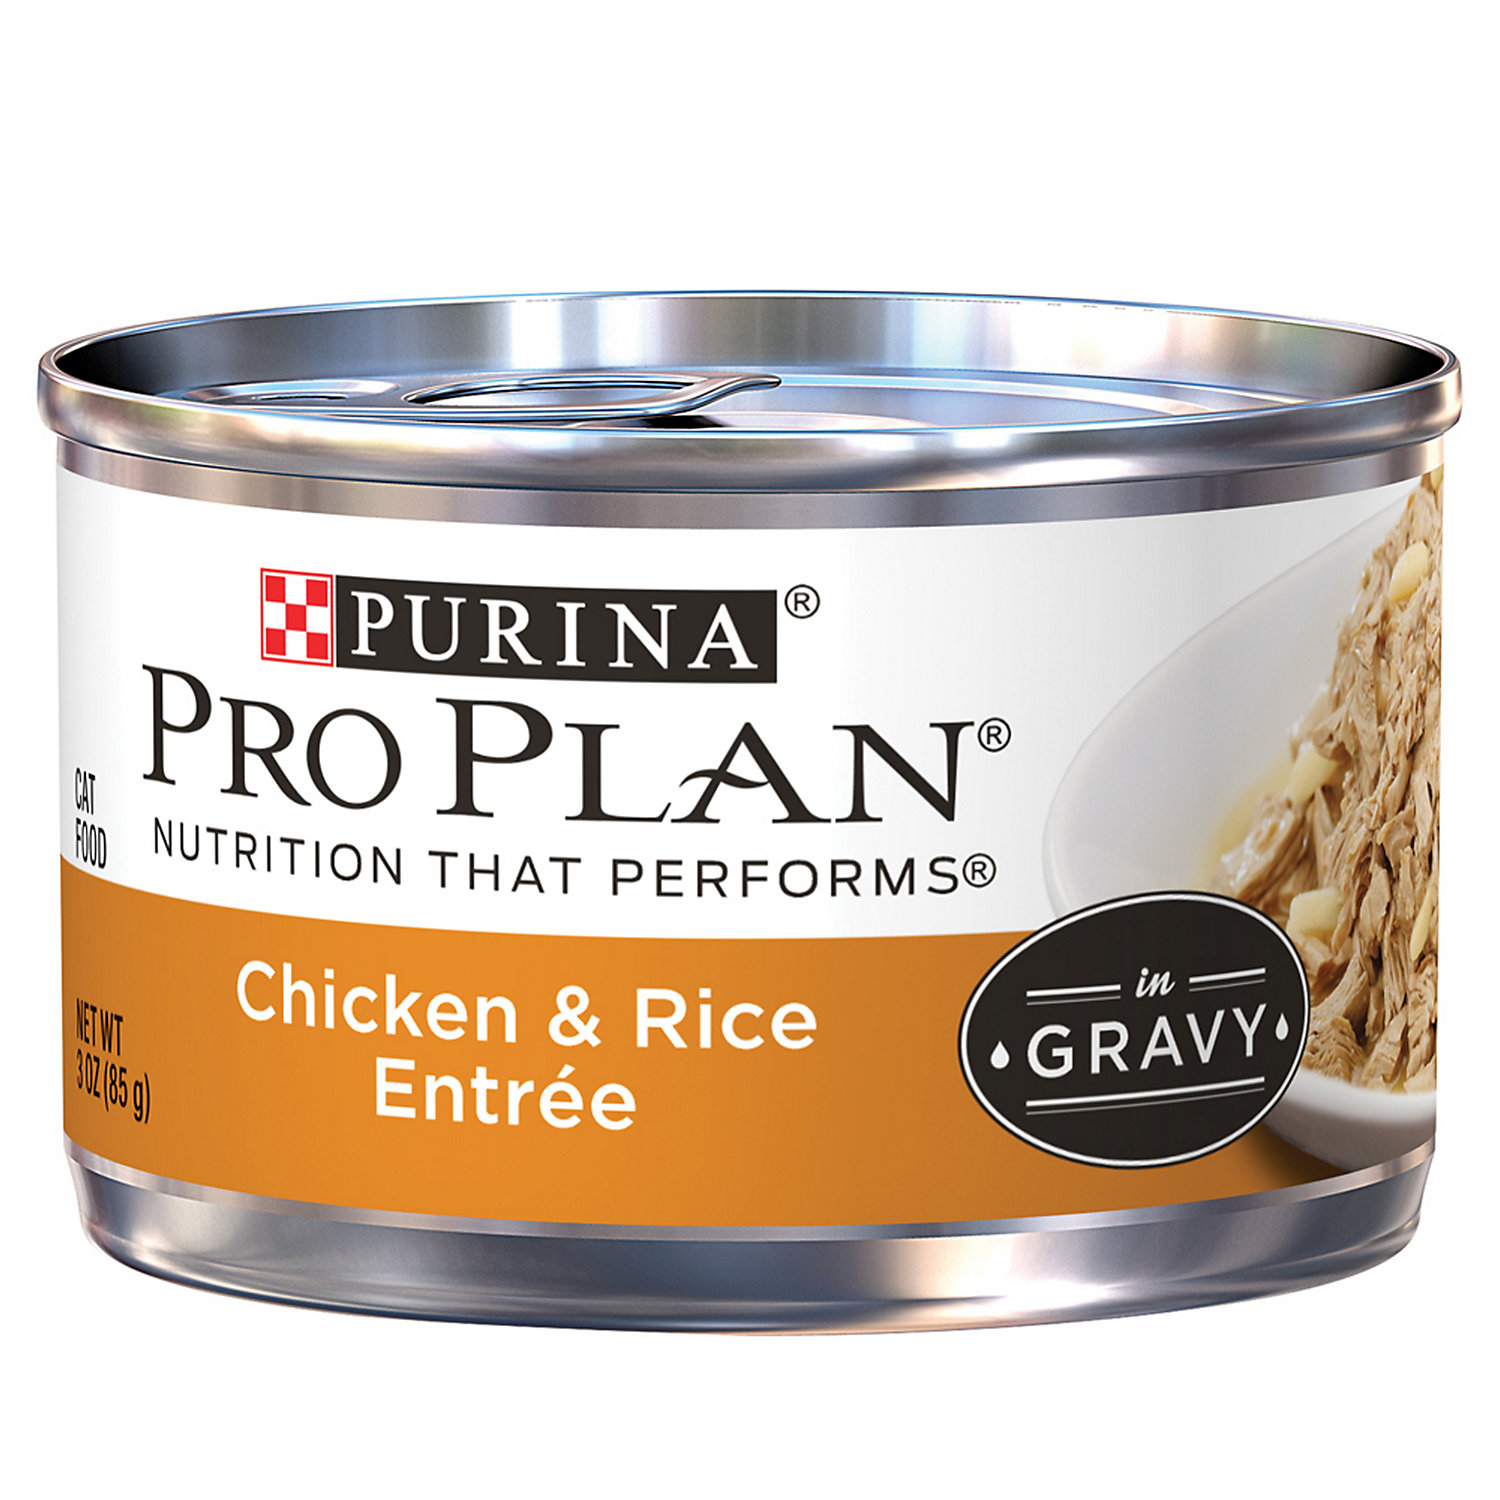 Purina Pro Plan Chicken & Rice Entree in Gravy Cat Food 3 oz